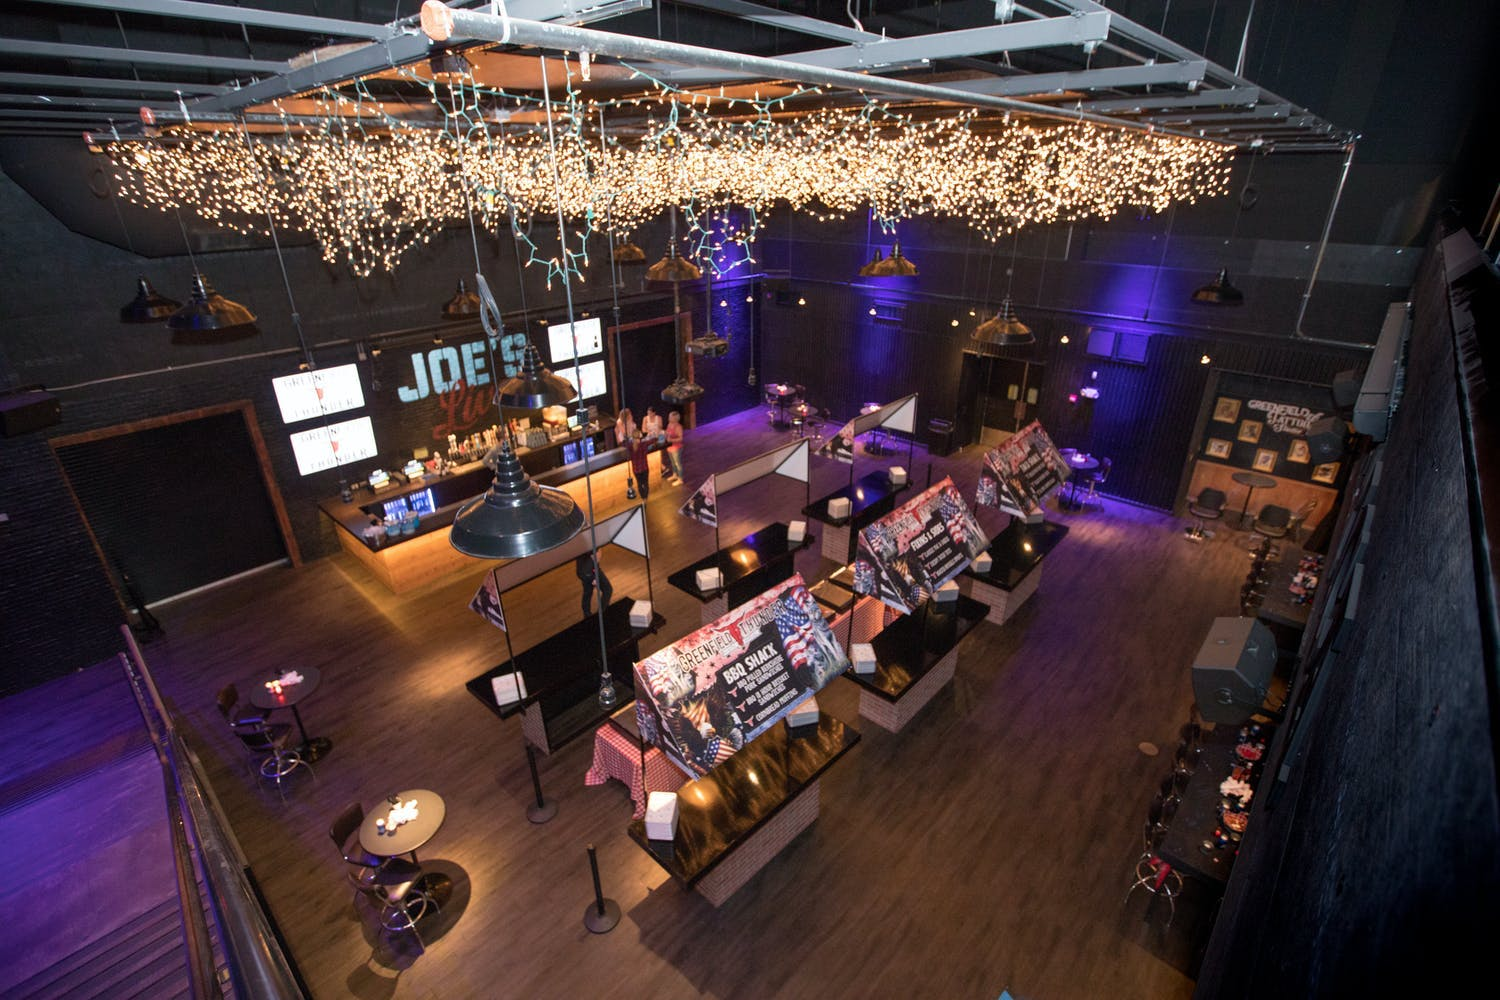 Country Music-Themed Party With Lighting Ceiling installation and American Food Stations | PartySlate